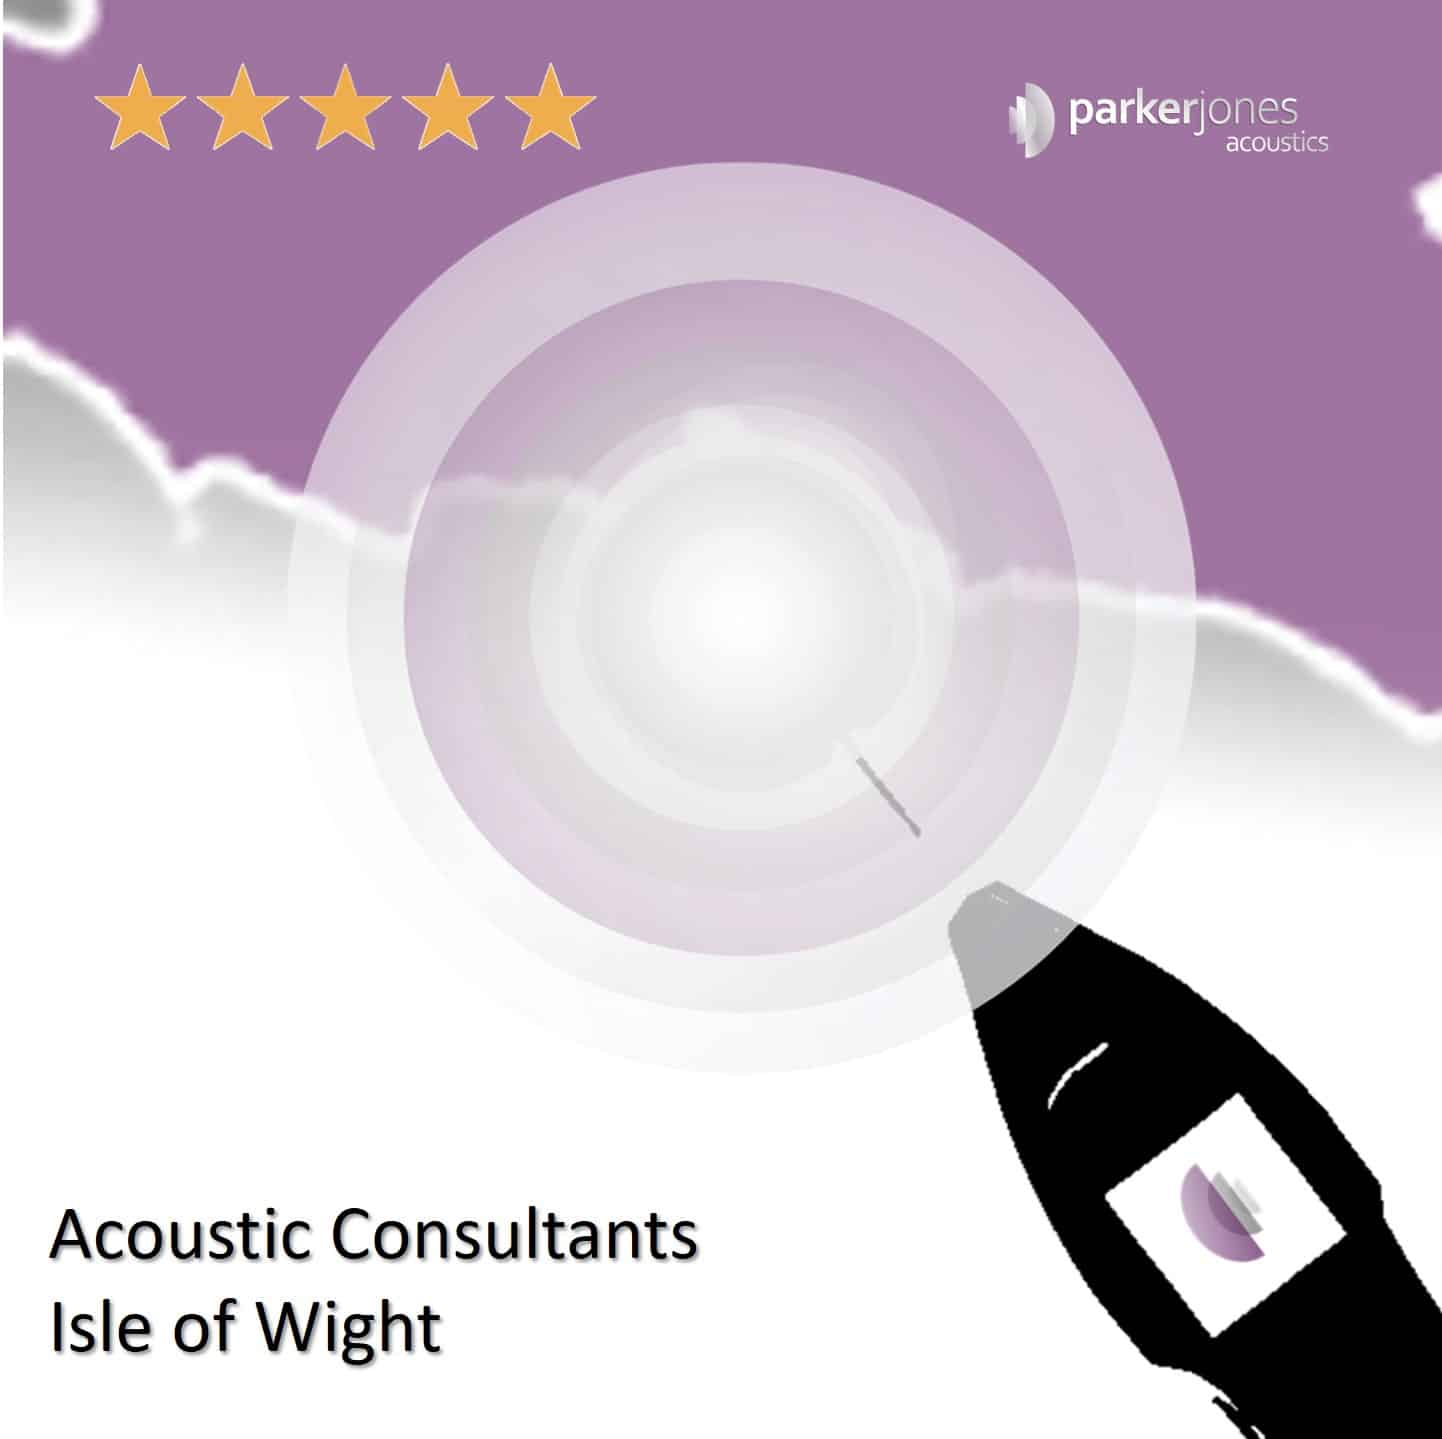 Acoustic consultants and noise surveys on the Isle of Wight.